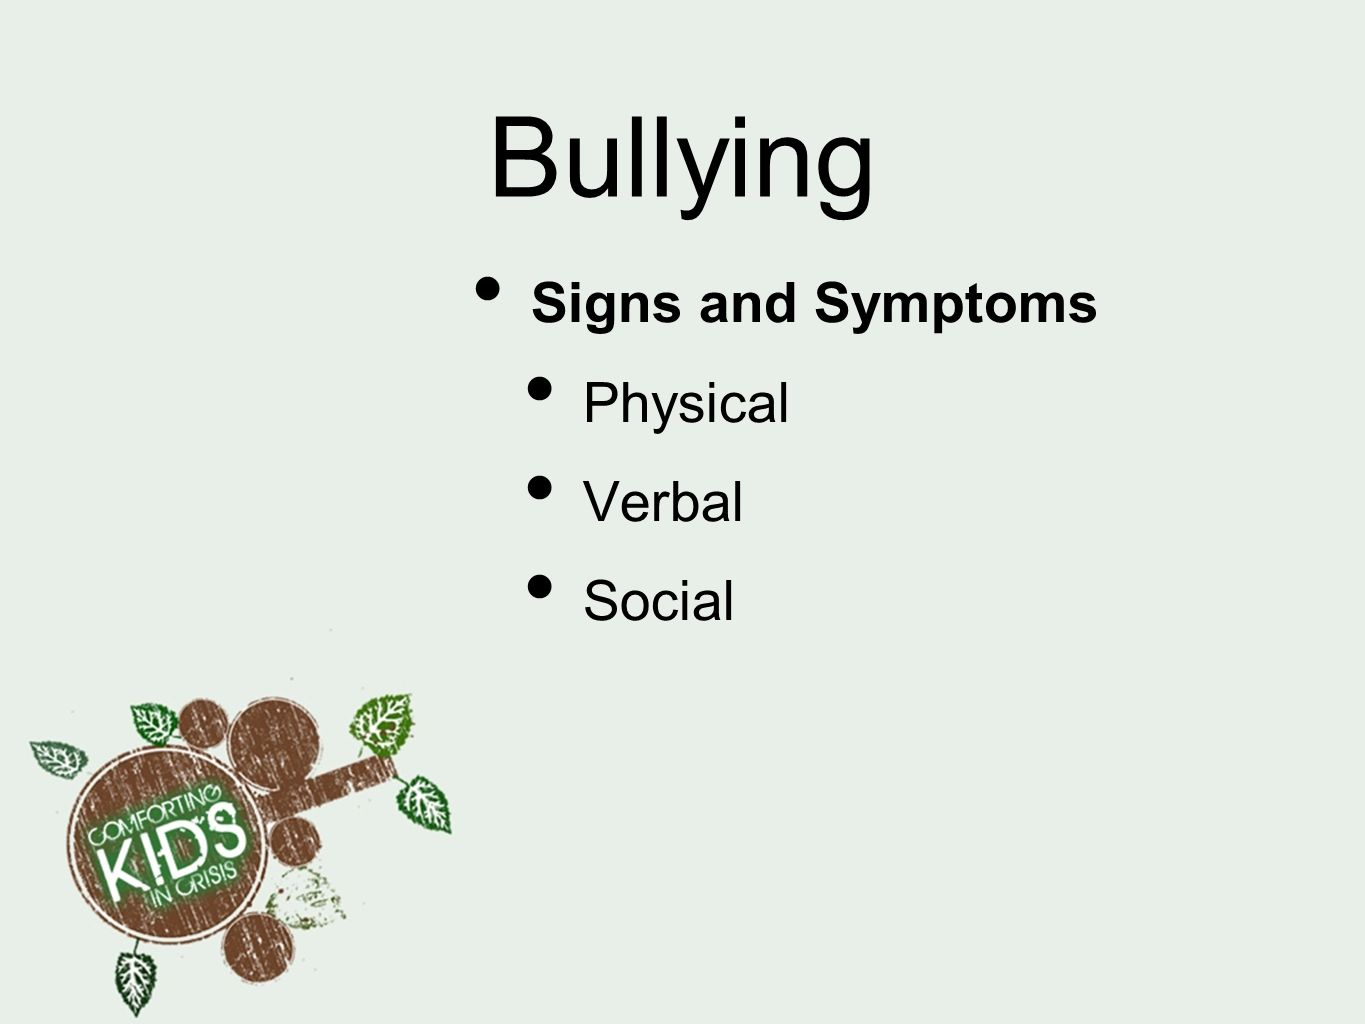 Bullying Signs and Symptoms Physical Verbal Social